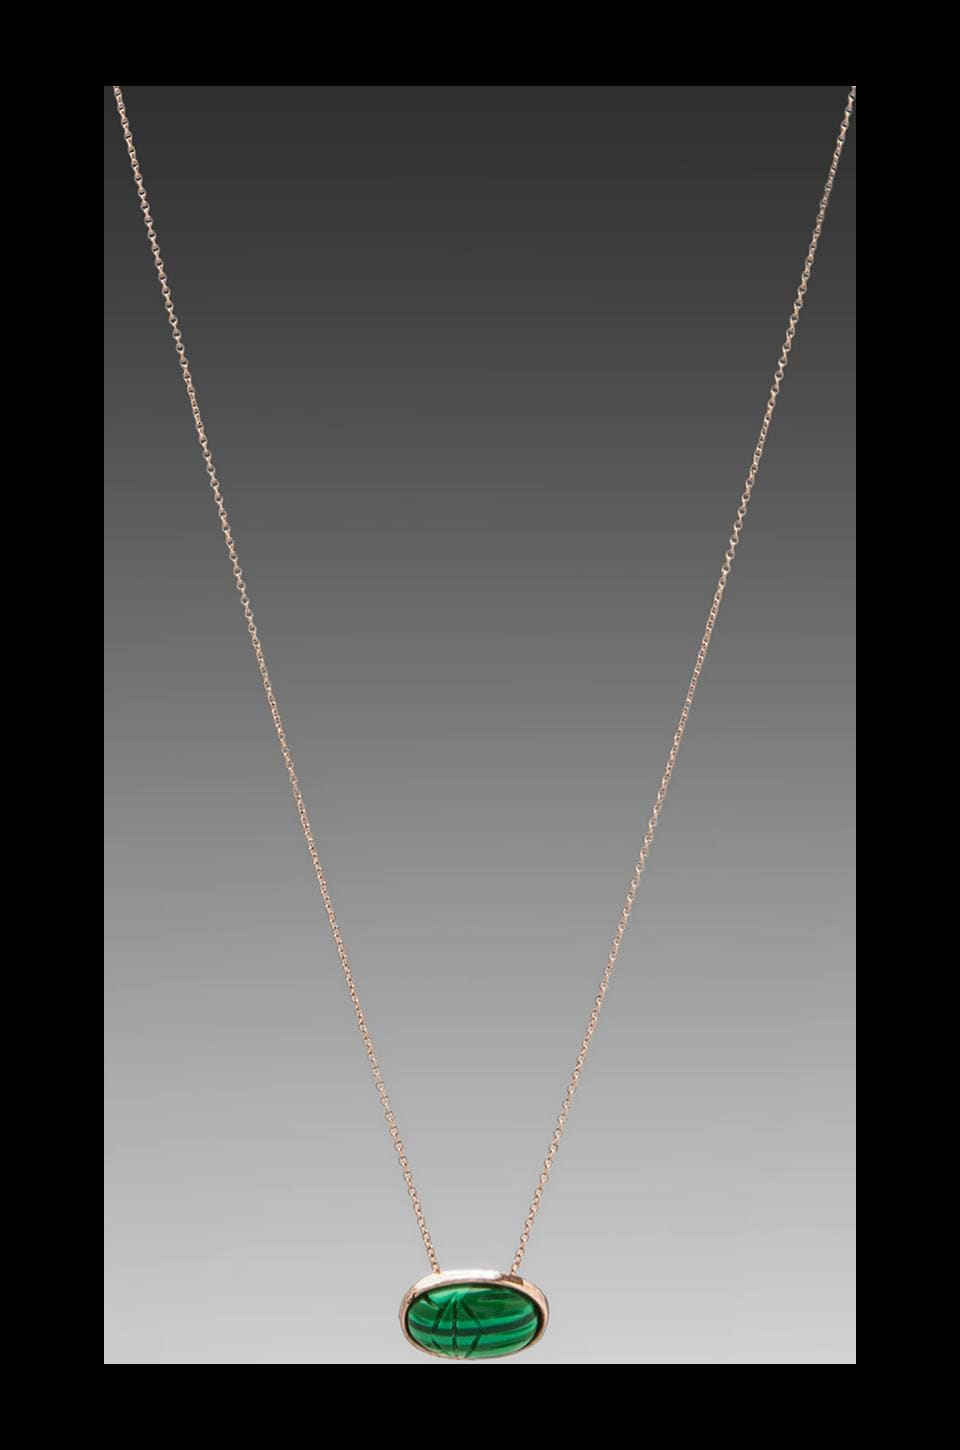 House of Harlow 1960 House of Harlow Scared Scarab Pendant Necklace in Rosegold